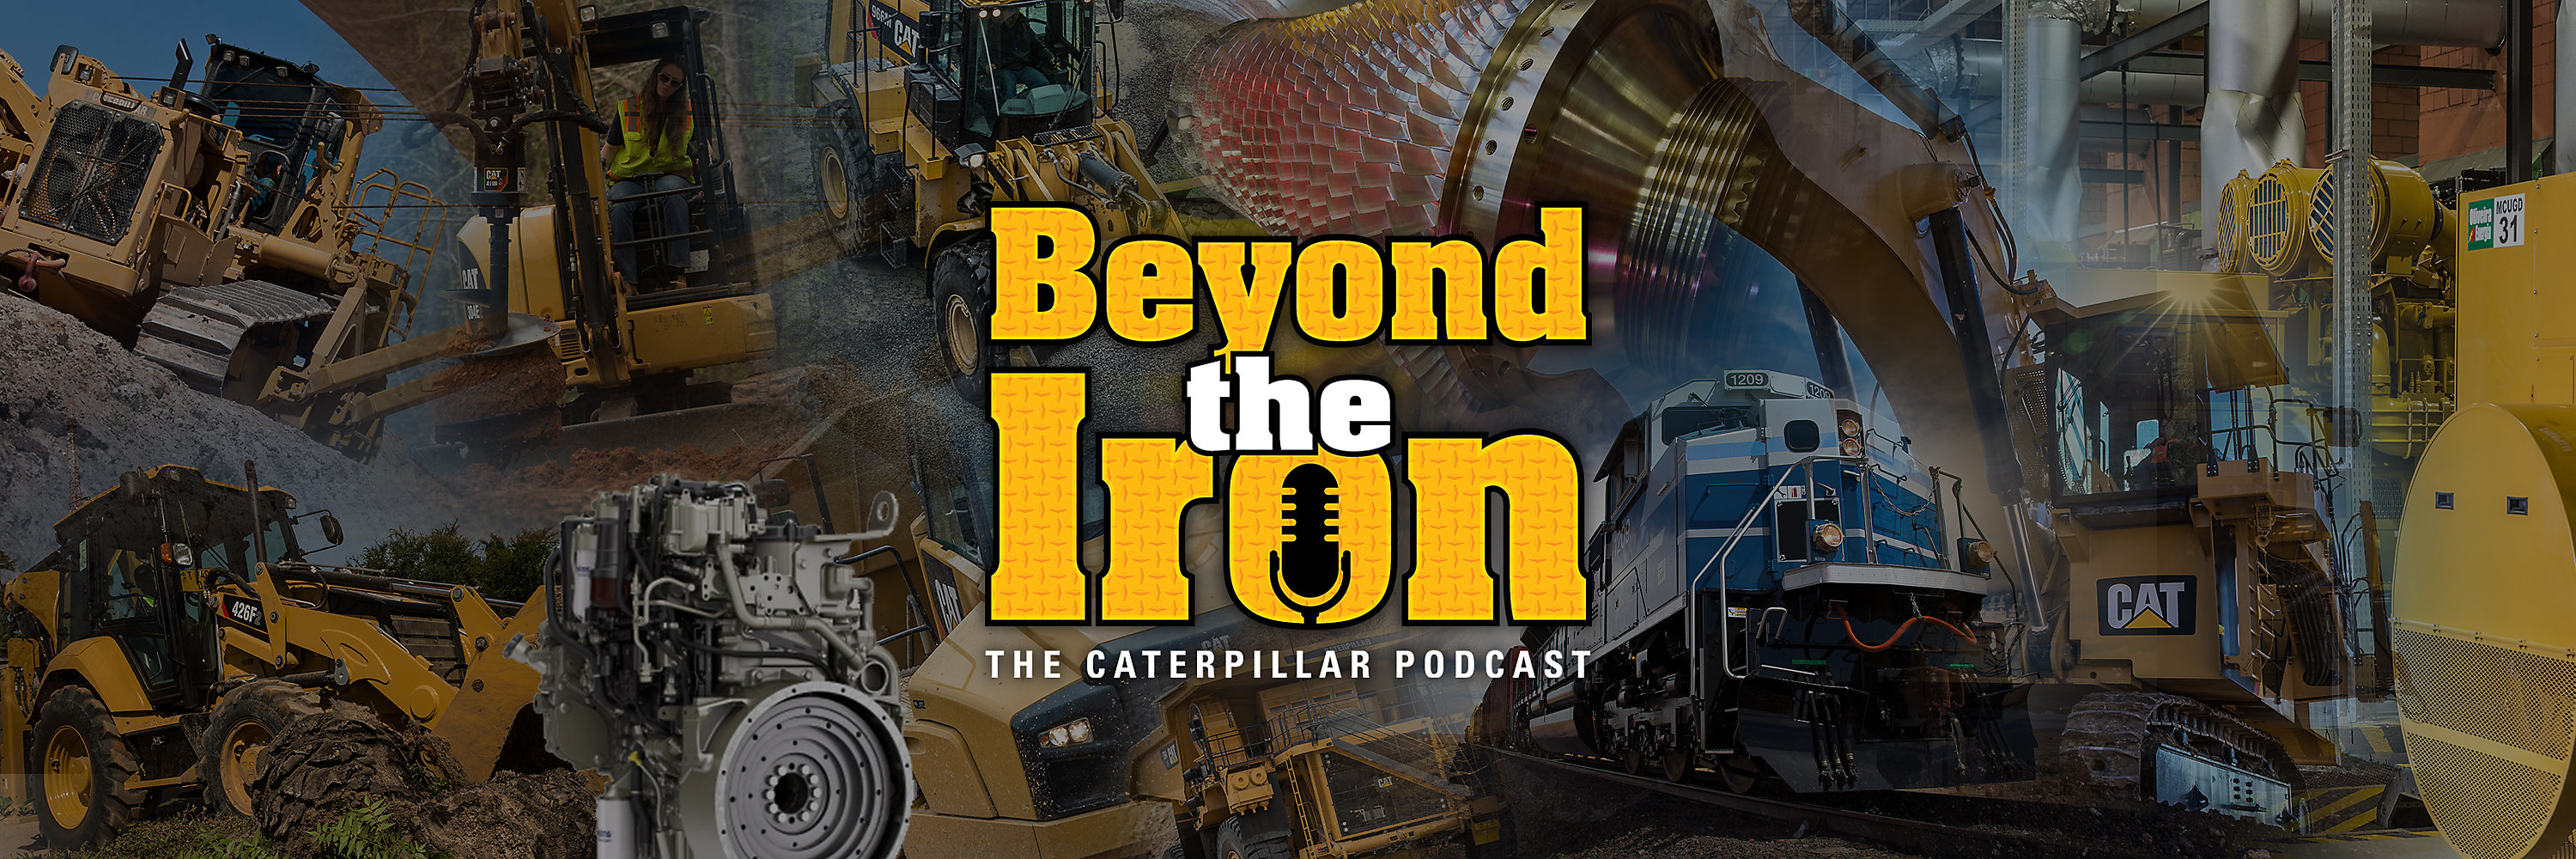 Beyond the Iron: The Caterpillar Podcast